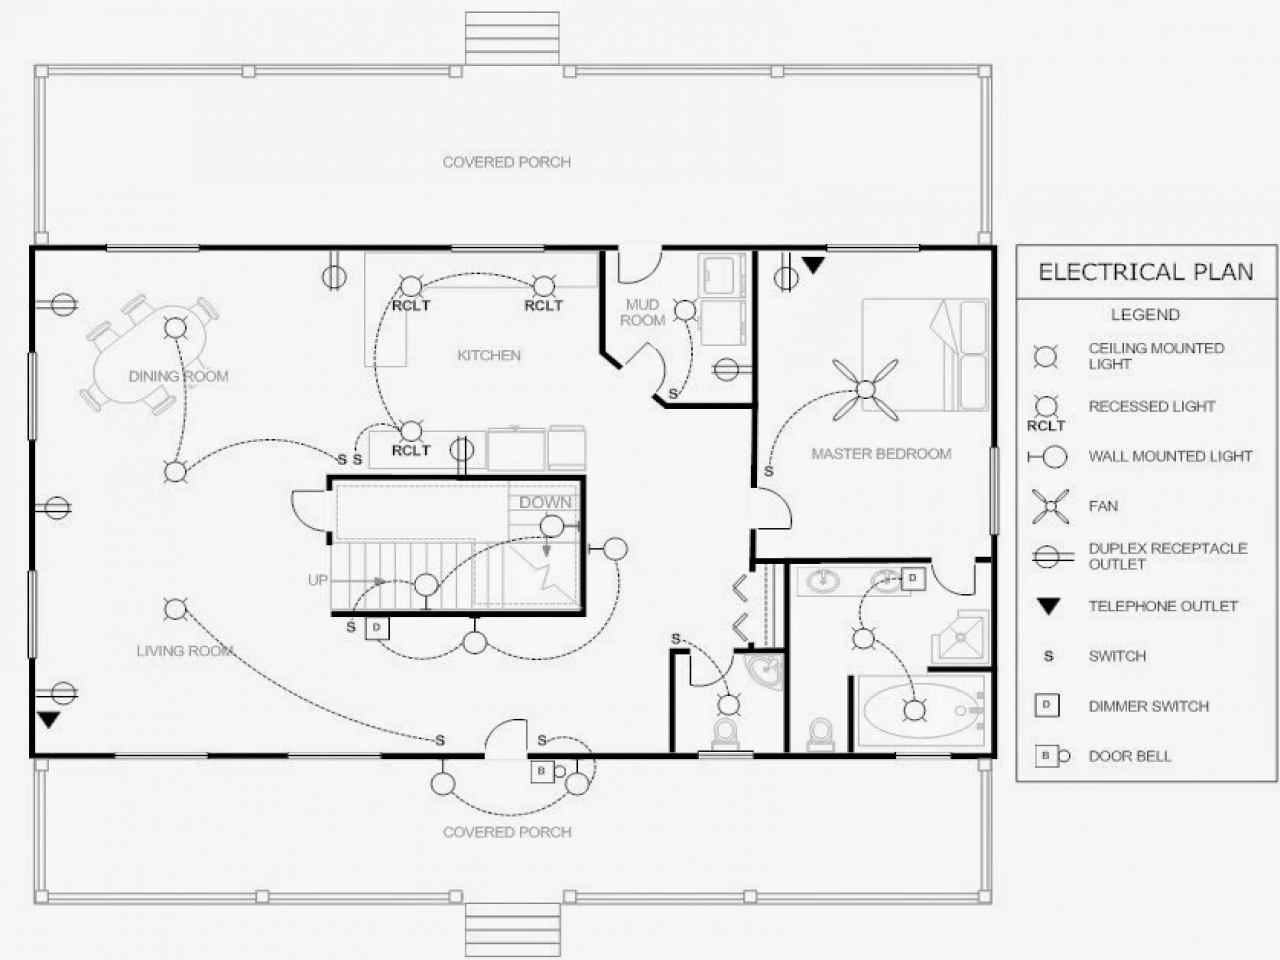 Electrical Plan Example Electrical Floor Plan Drawing